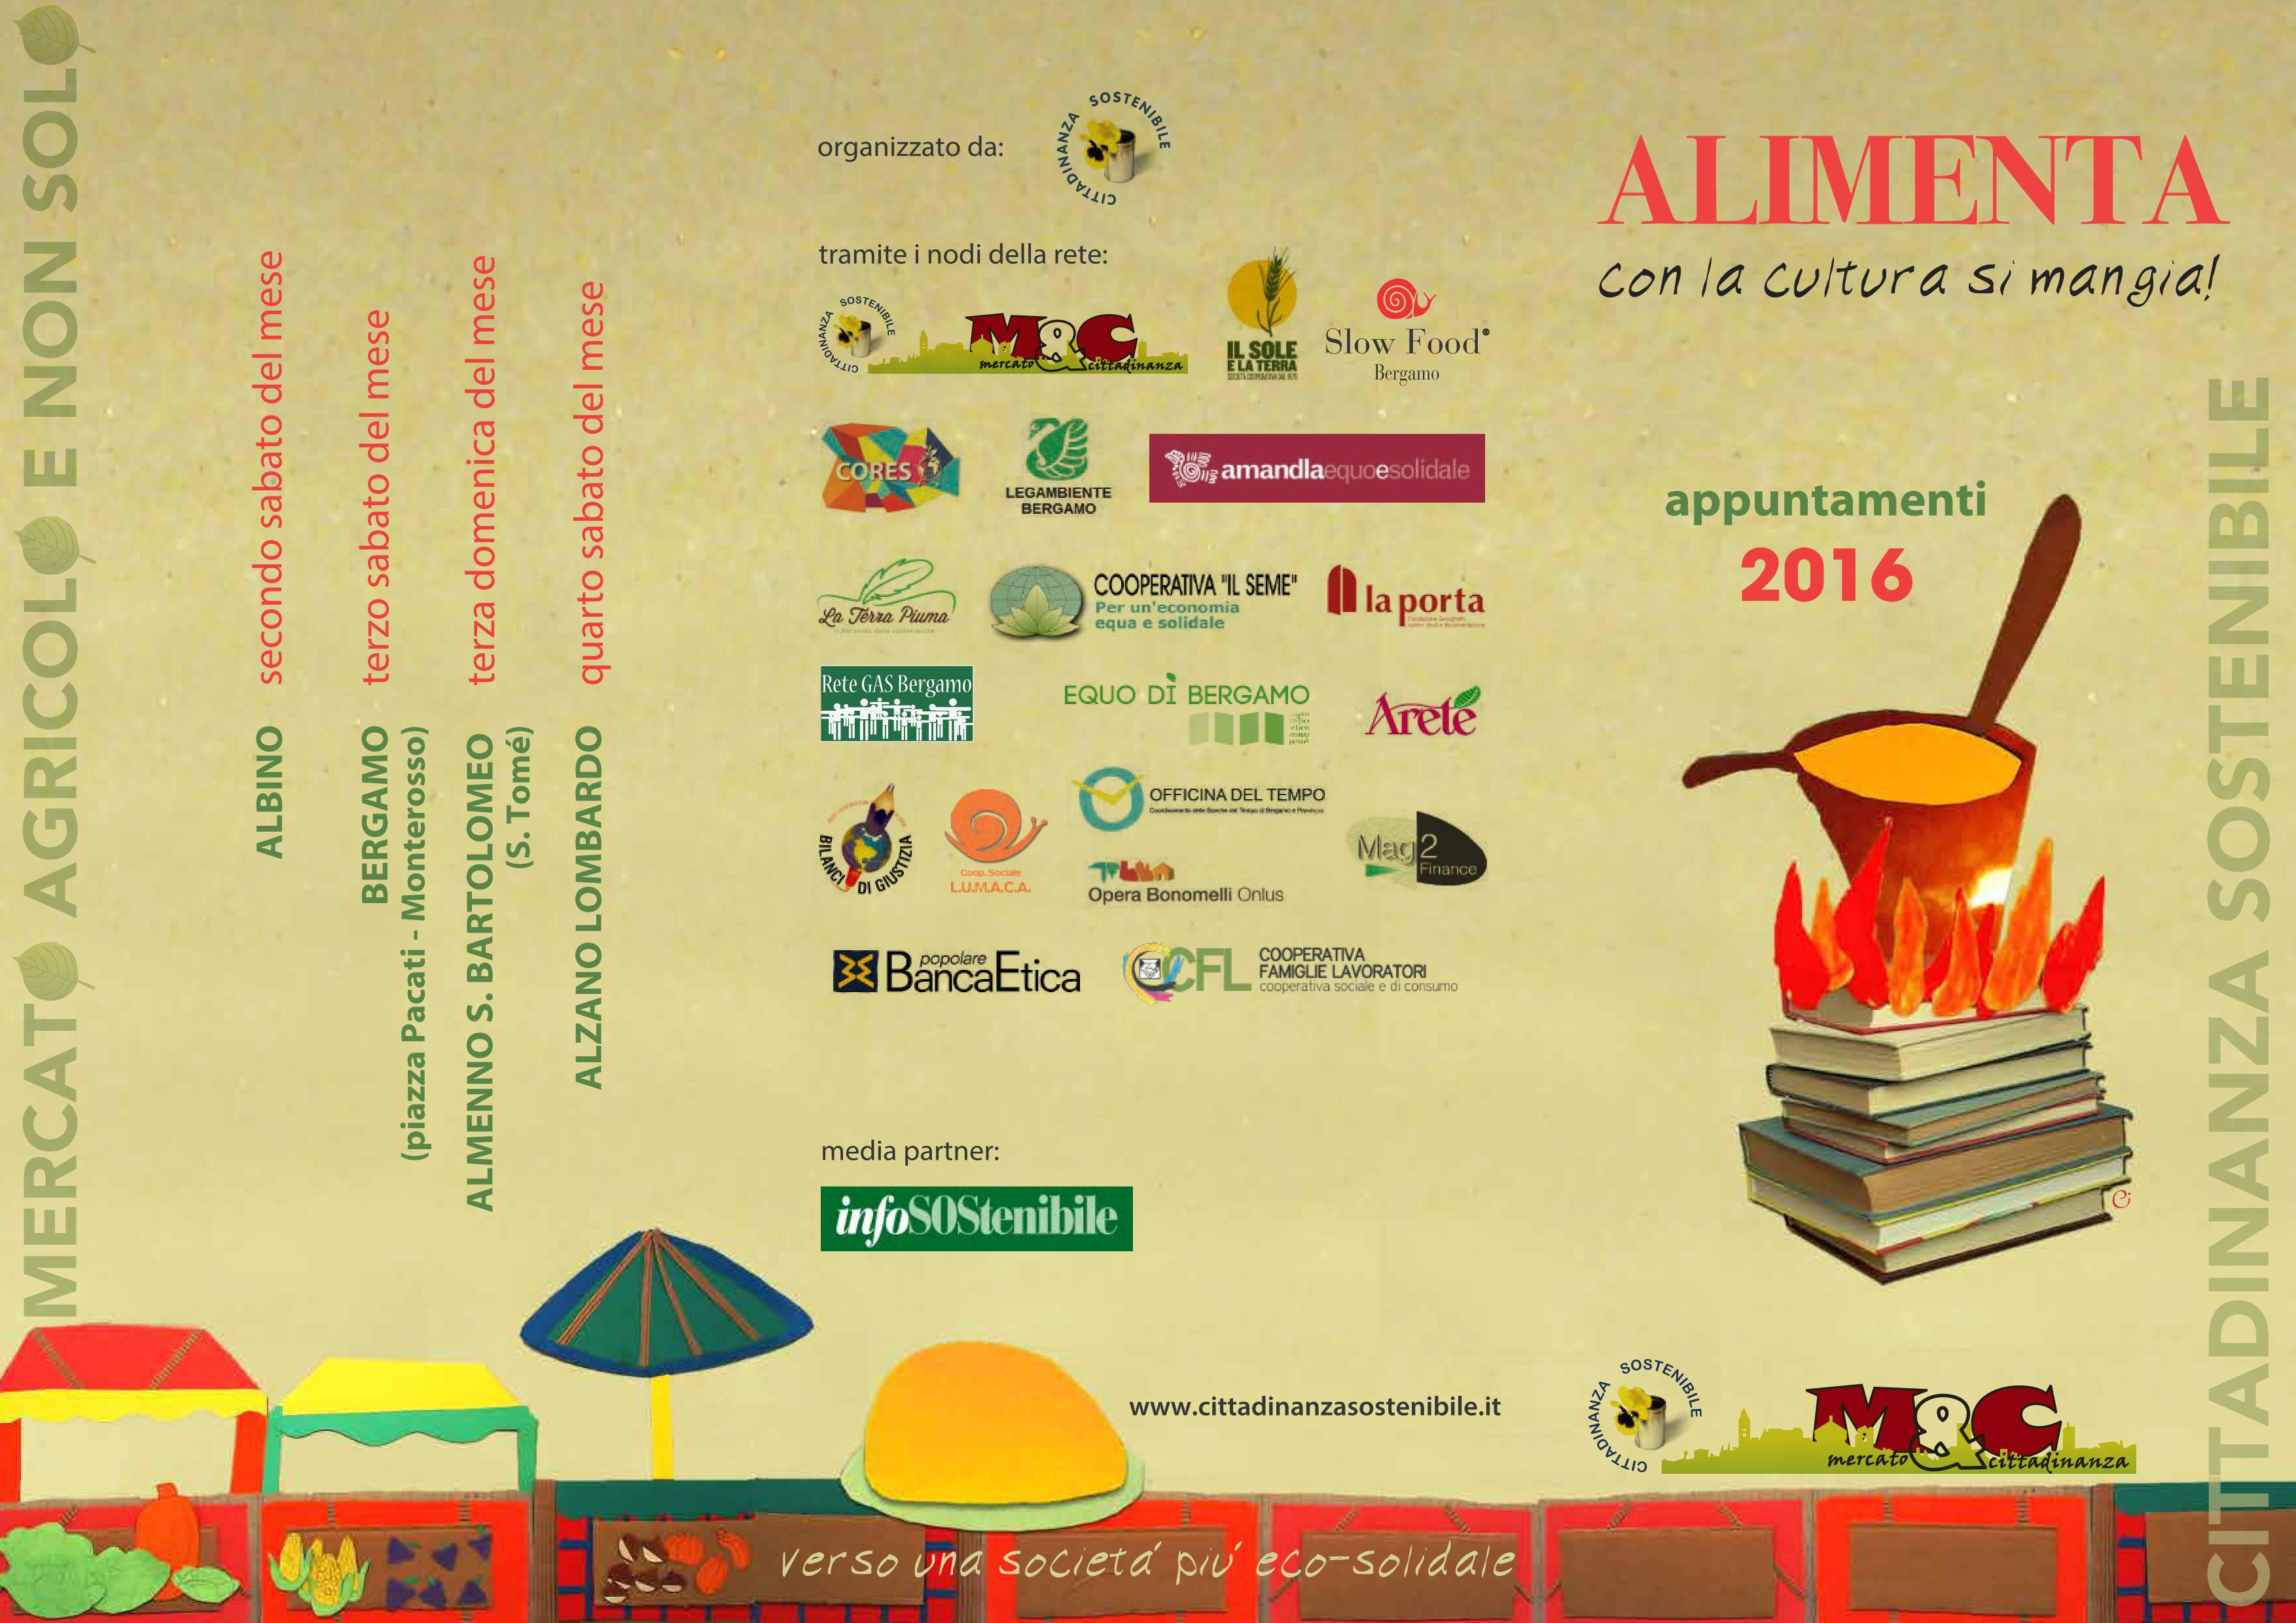 2016-CS-MC-Alimenta-01